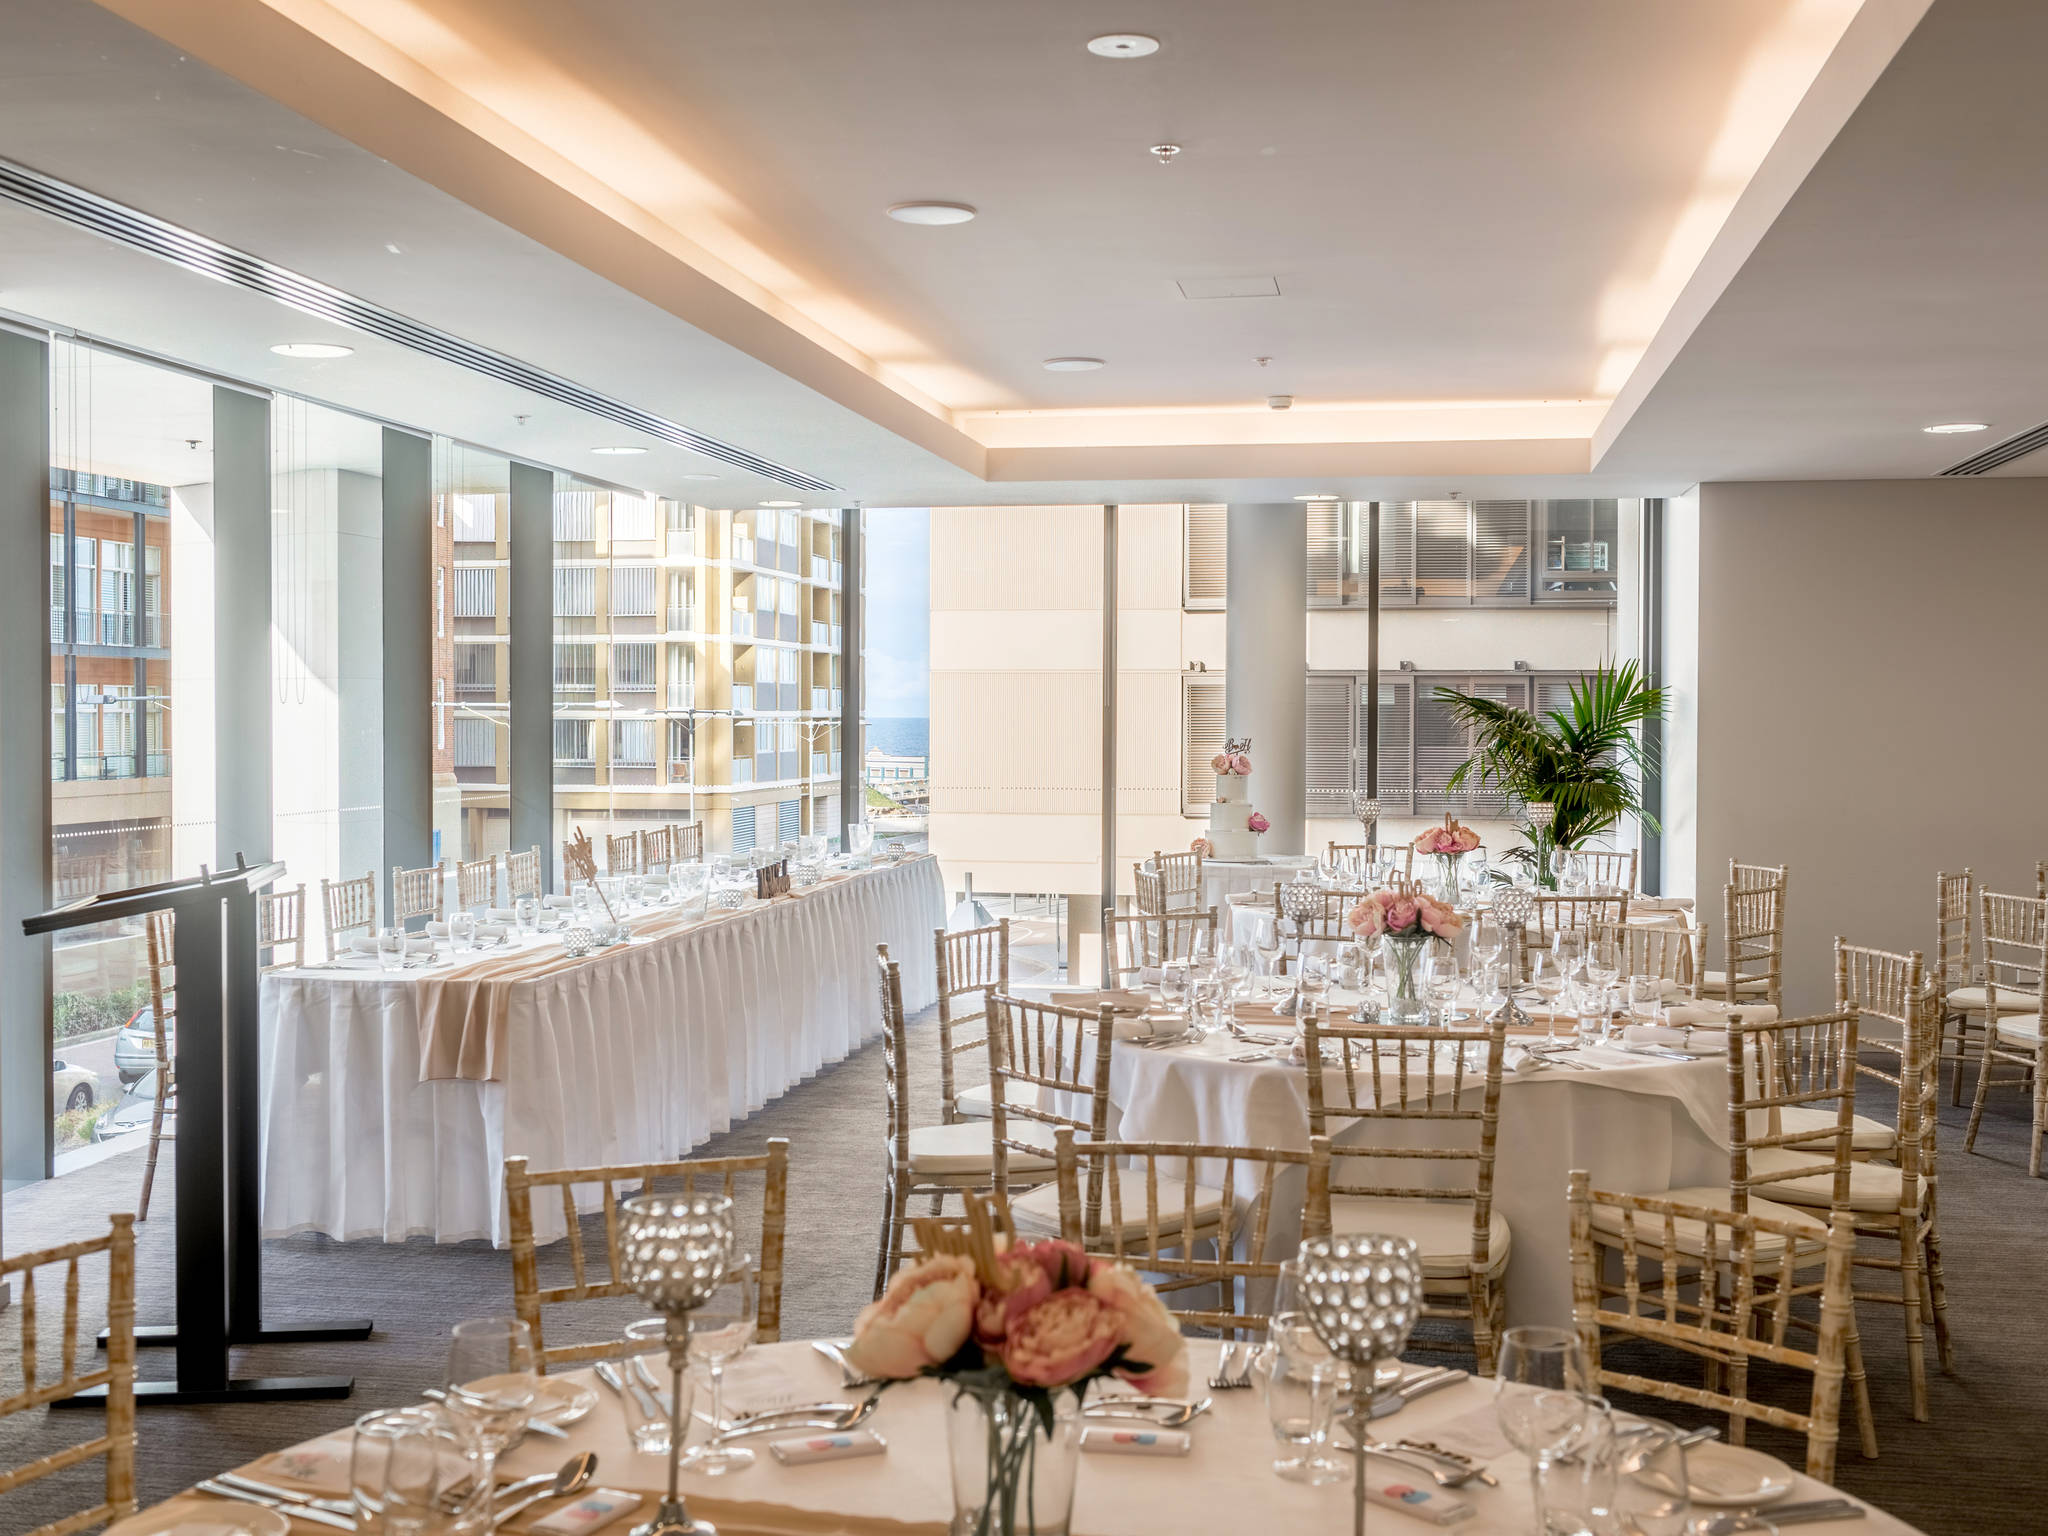 Novotel newcastle wedding